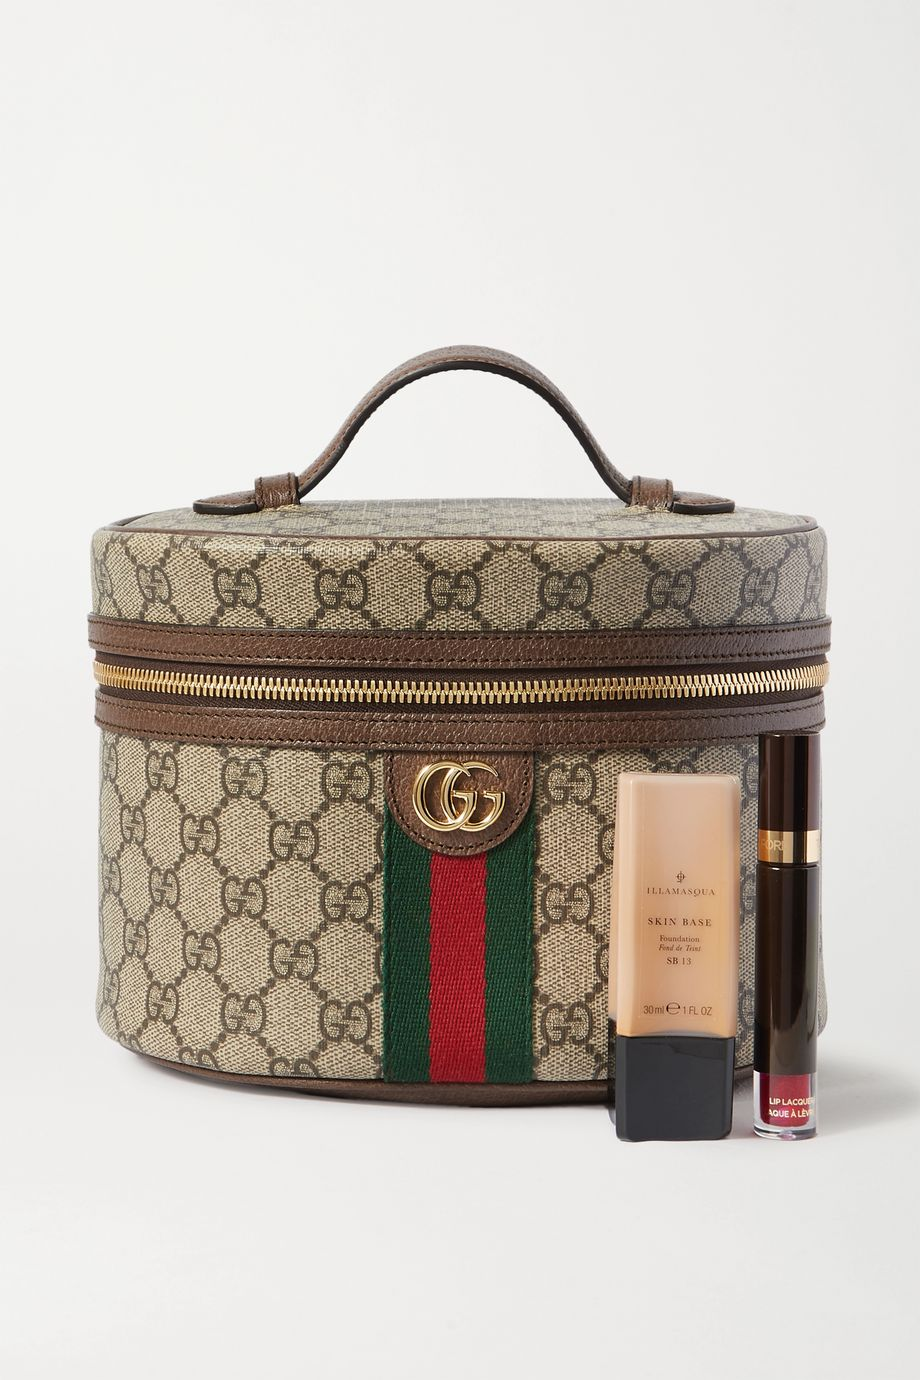 Gucci Supreme textured leather-trimmed printed coated-canvas cosmetics case